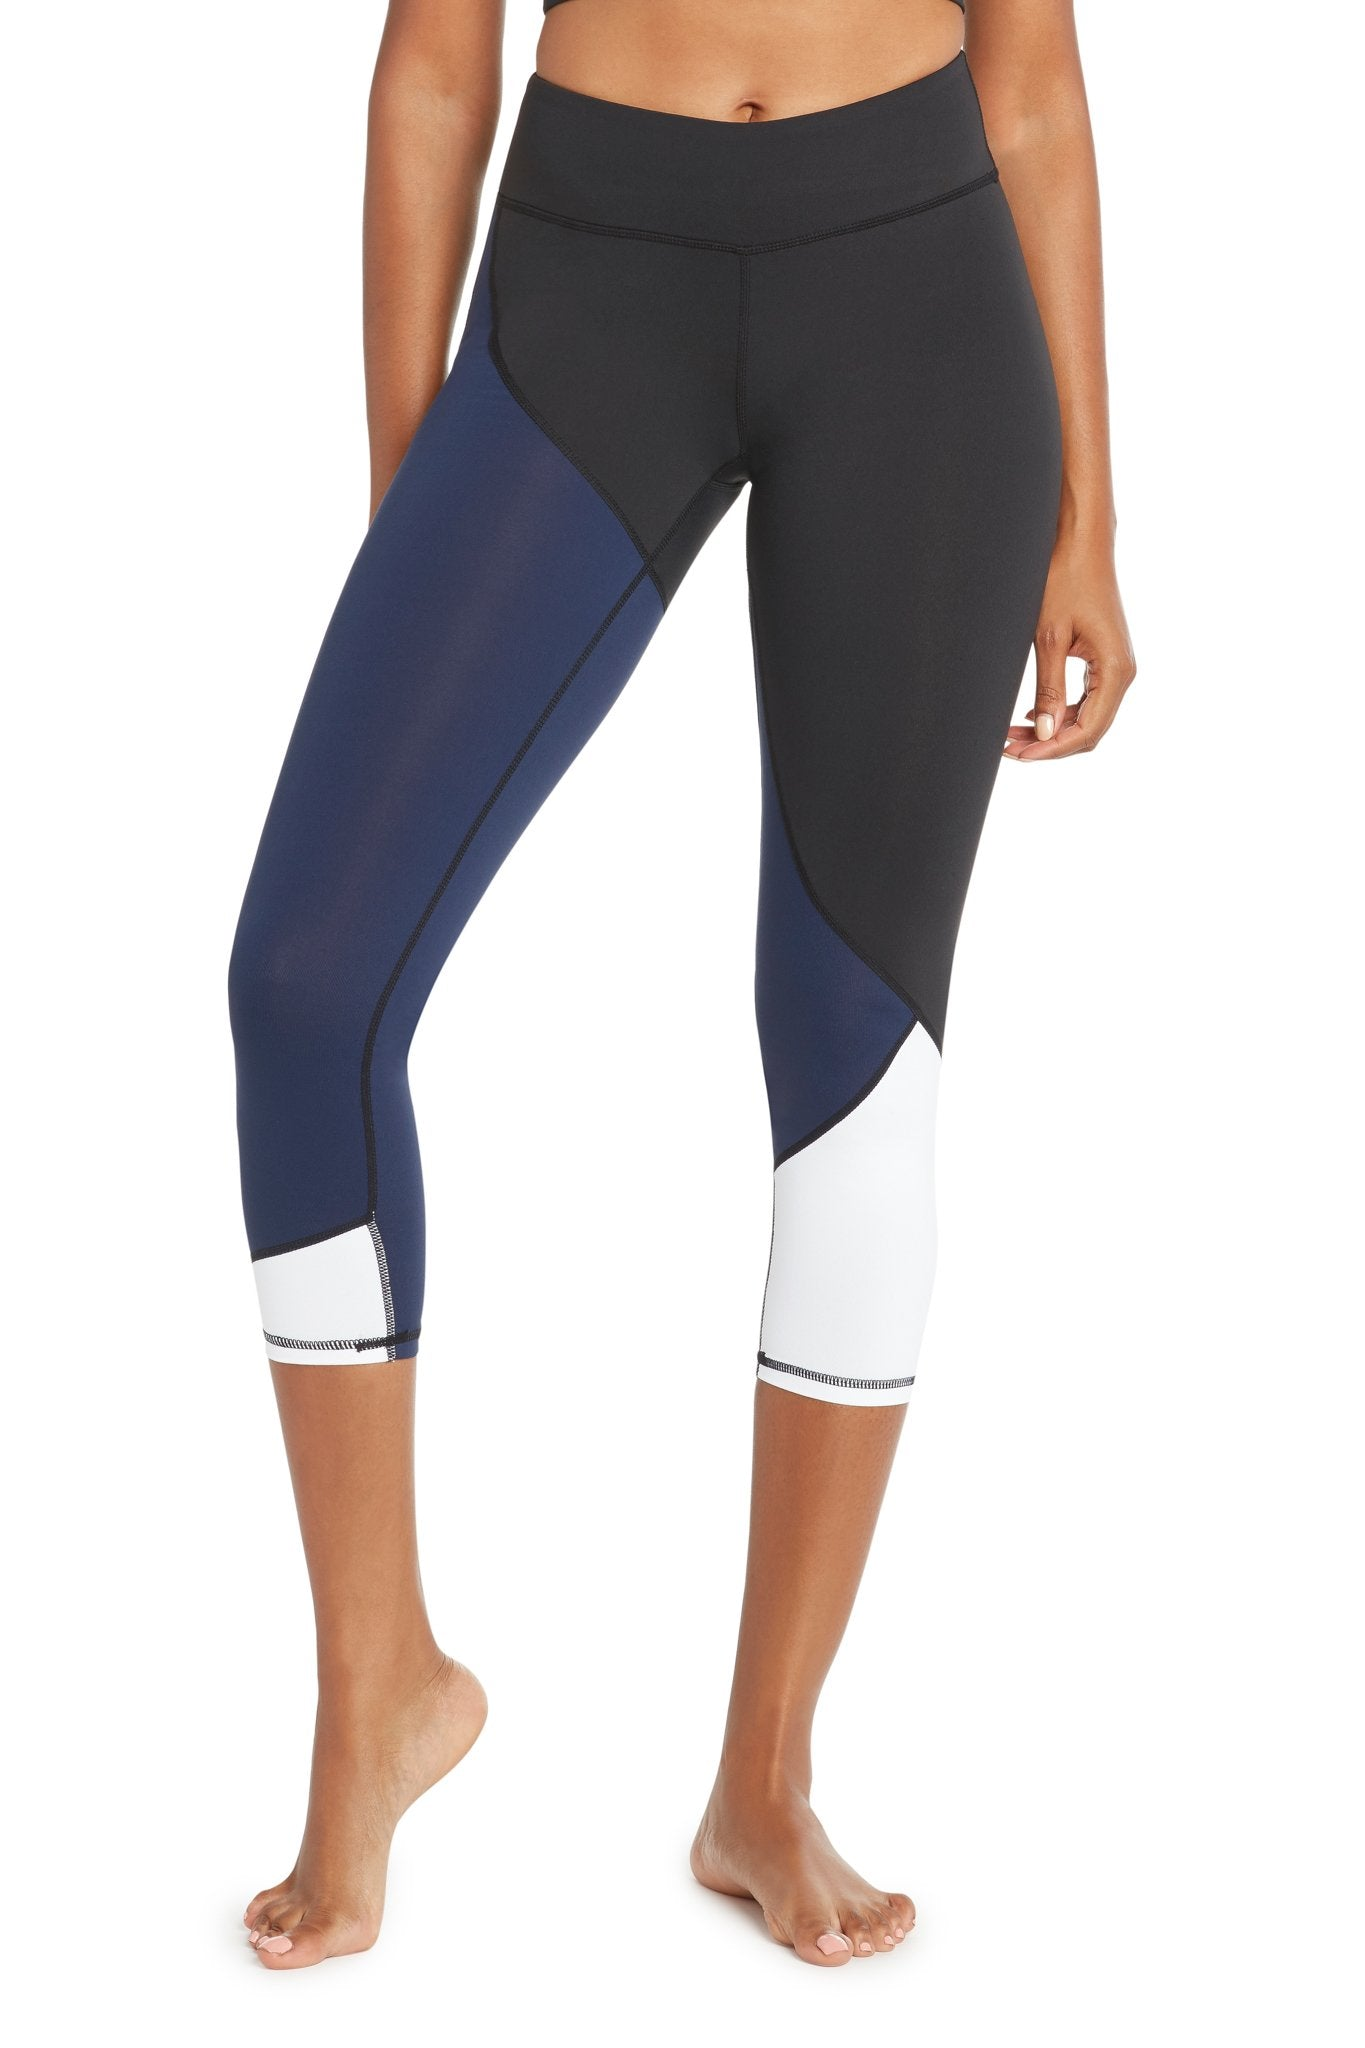 Bianca II Mid-Waist Women's Activewear Leggings